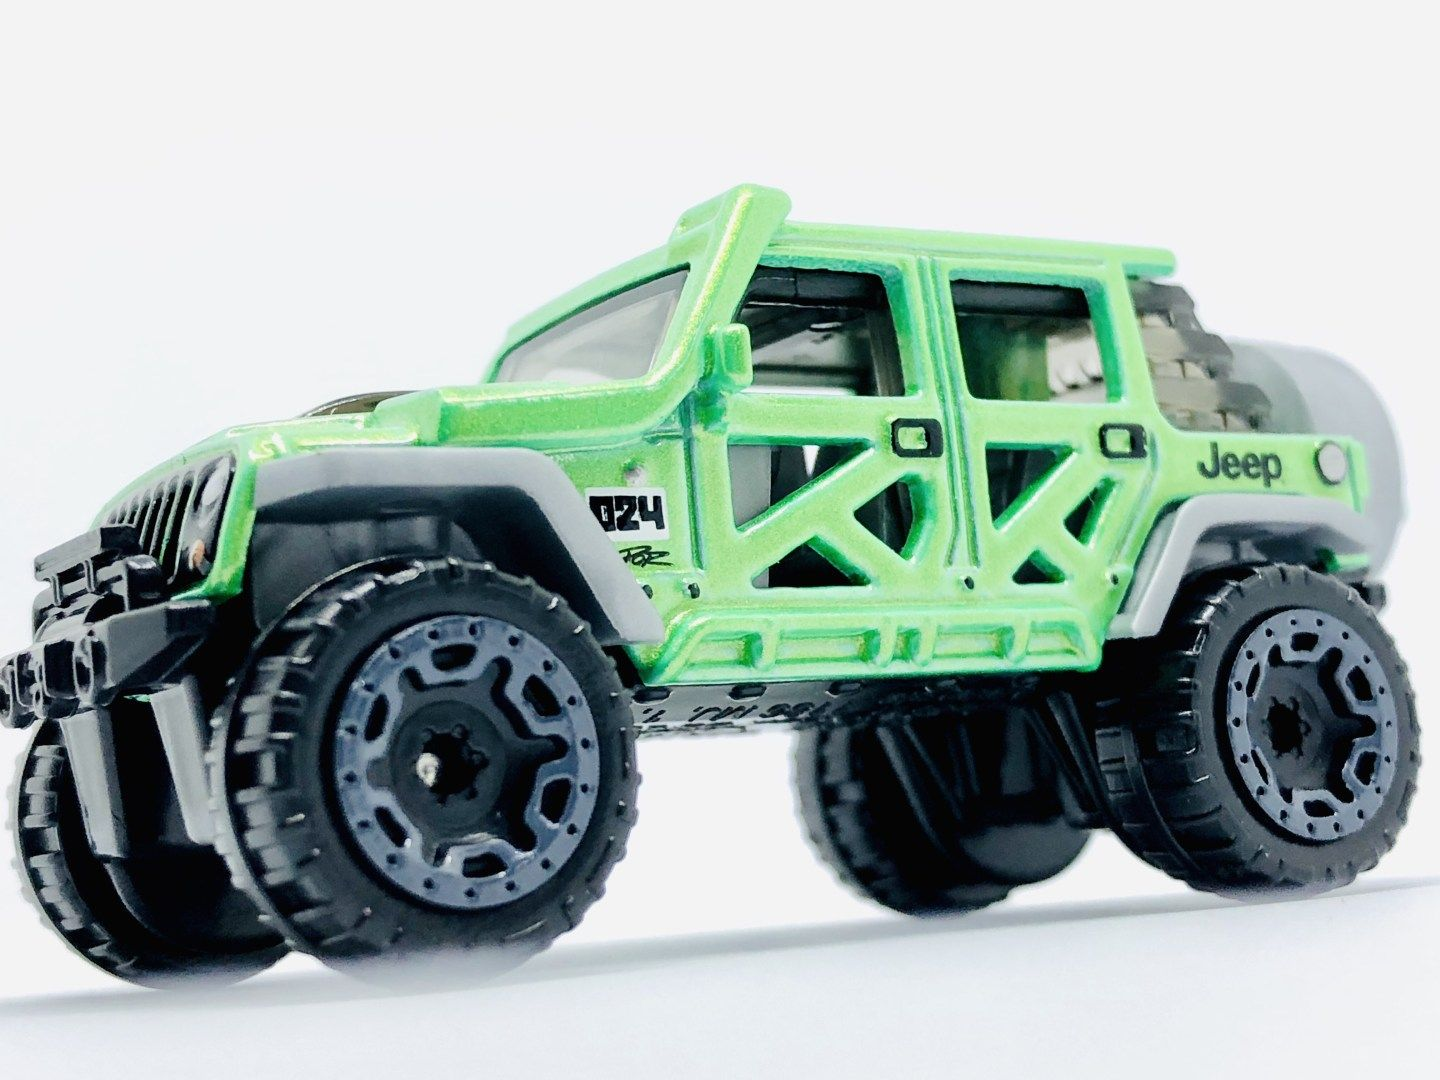 Showdown Hot Wheels Indonesia Jeep Wrangler Or Land Rover